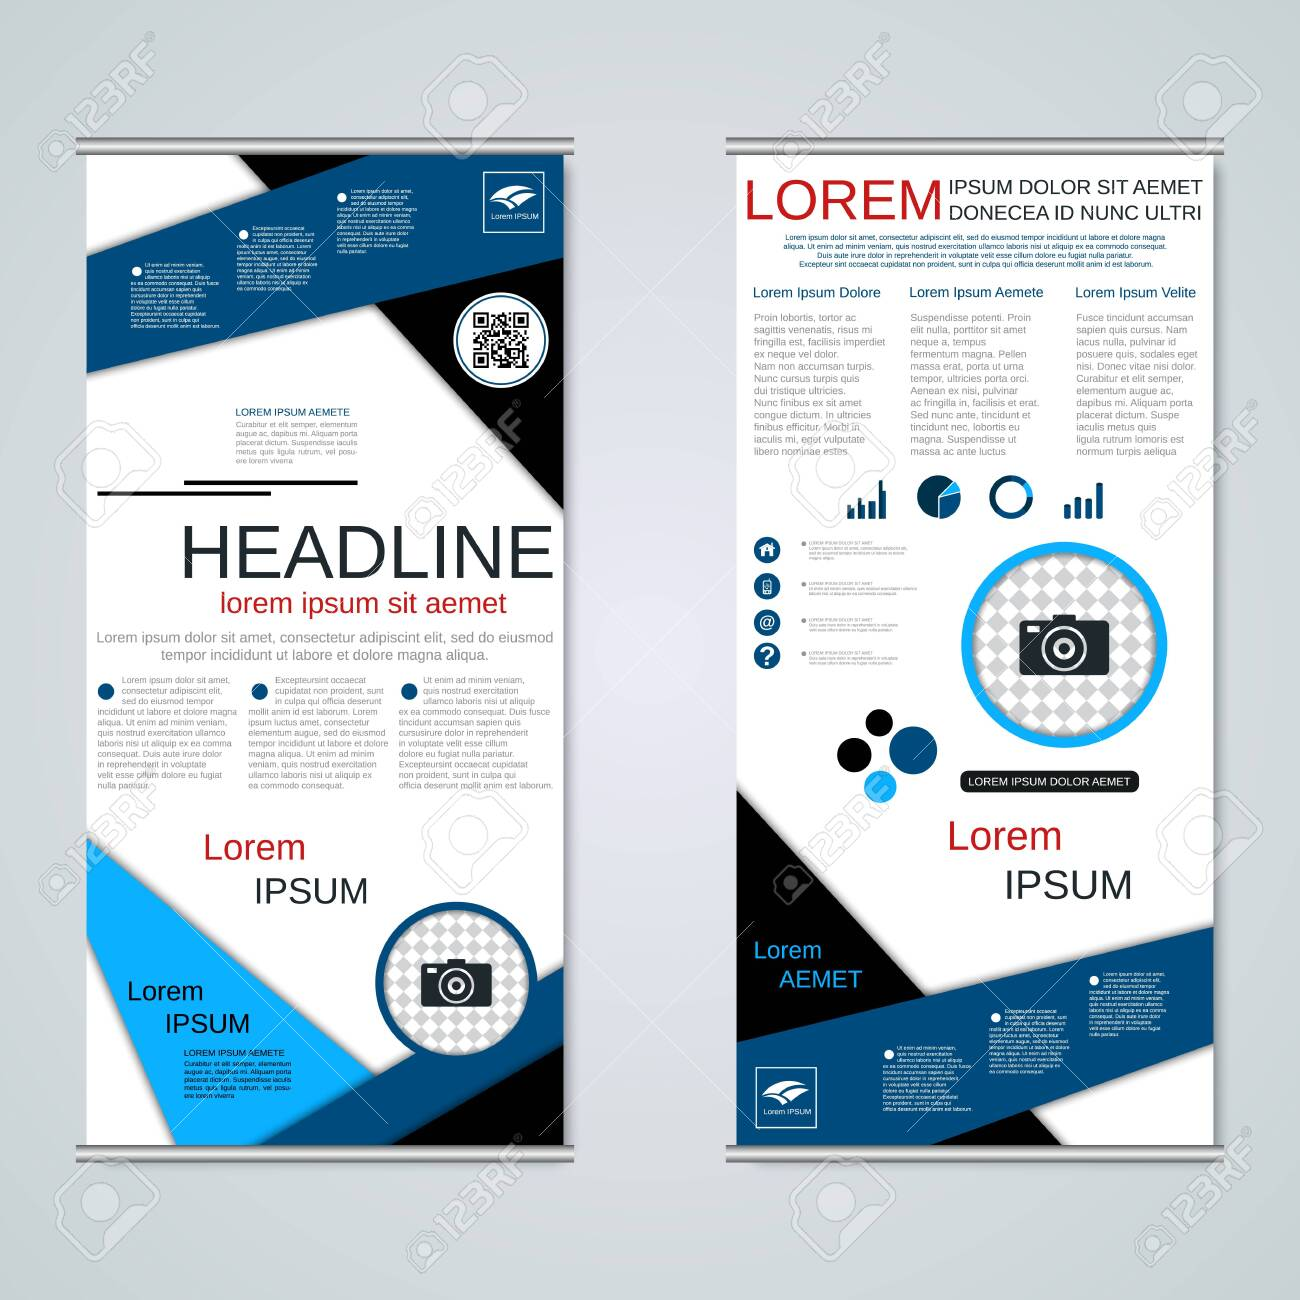 Modern roll-up business banners, two-sided flyer vector design template - 122701773